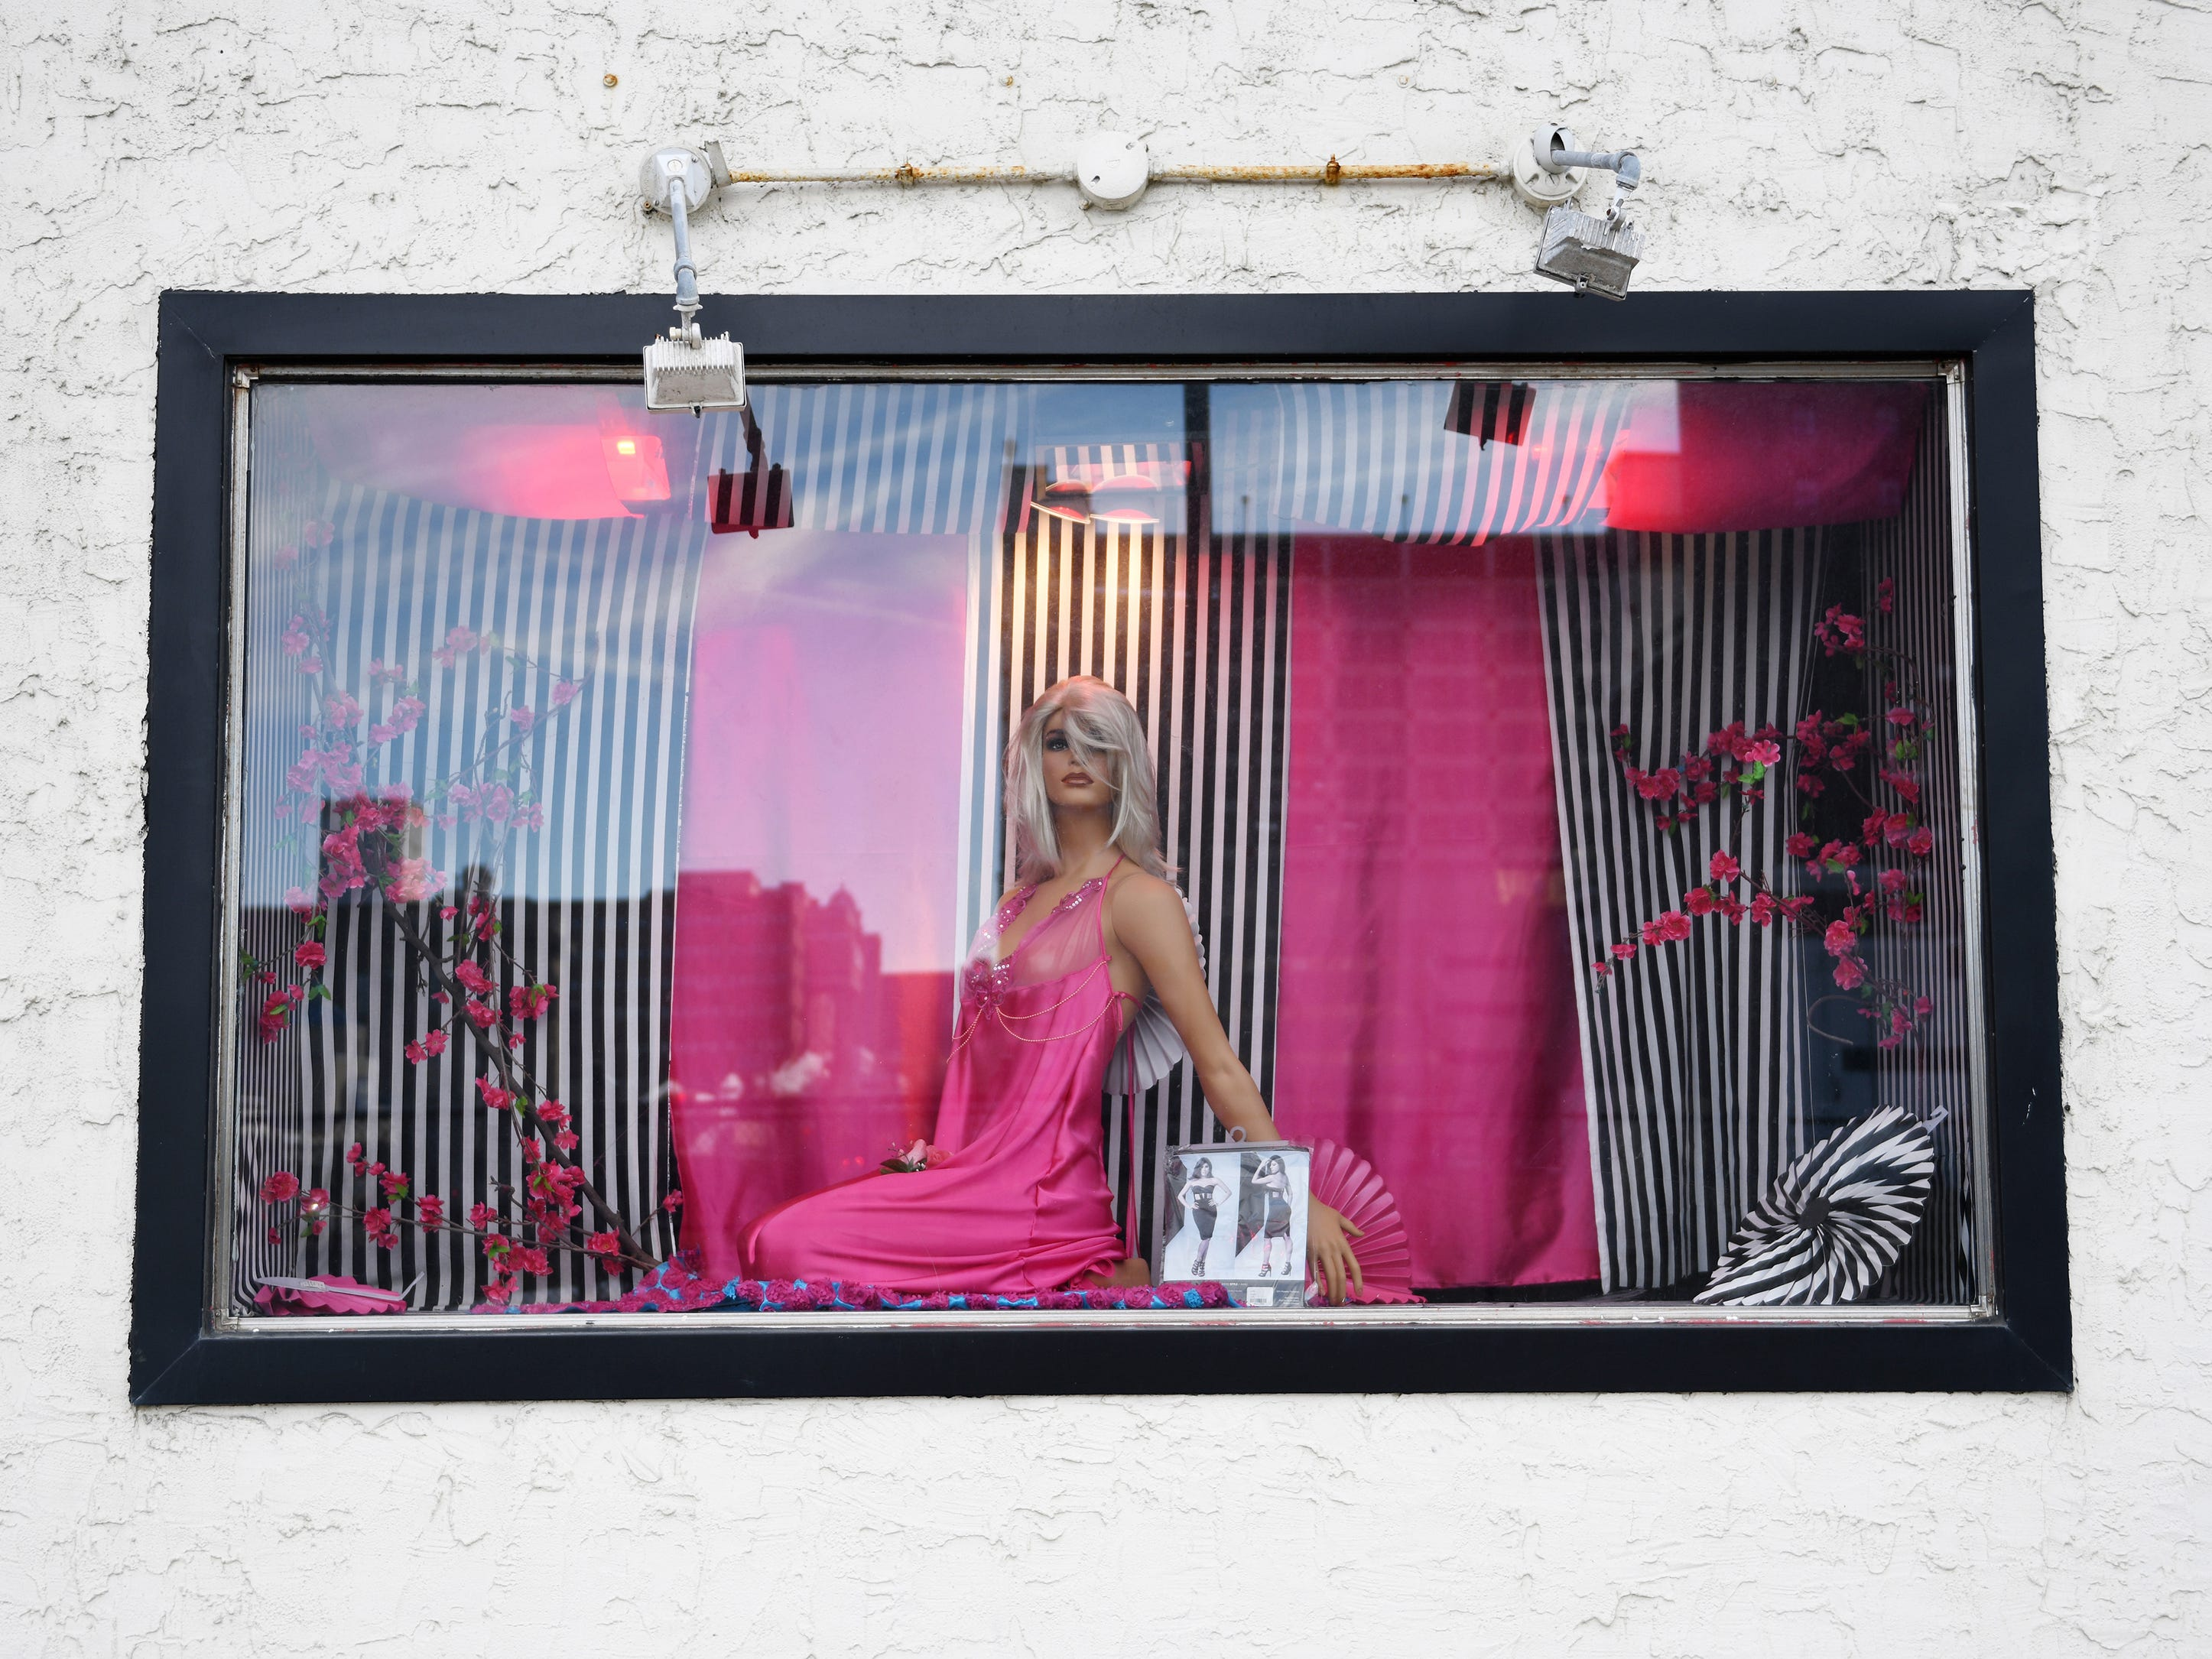 A window display for a adult toy store shows a mannequin wearing lingerie along Dr. Martin Luther King Jr. Boulevard in Atlantic City on Friday, Jan. 11, 2019.